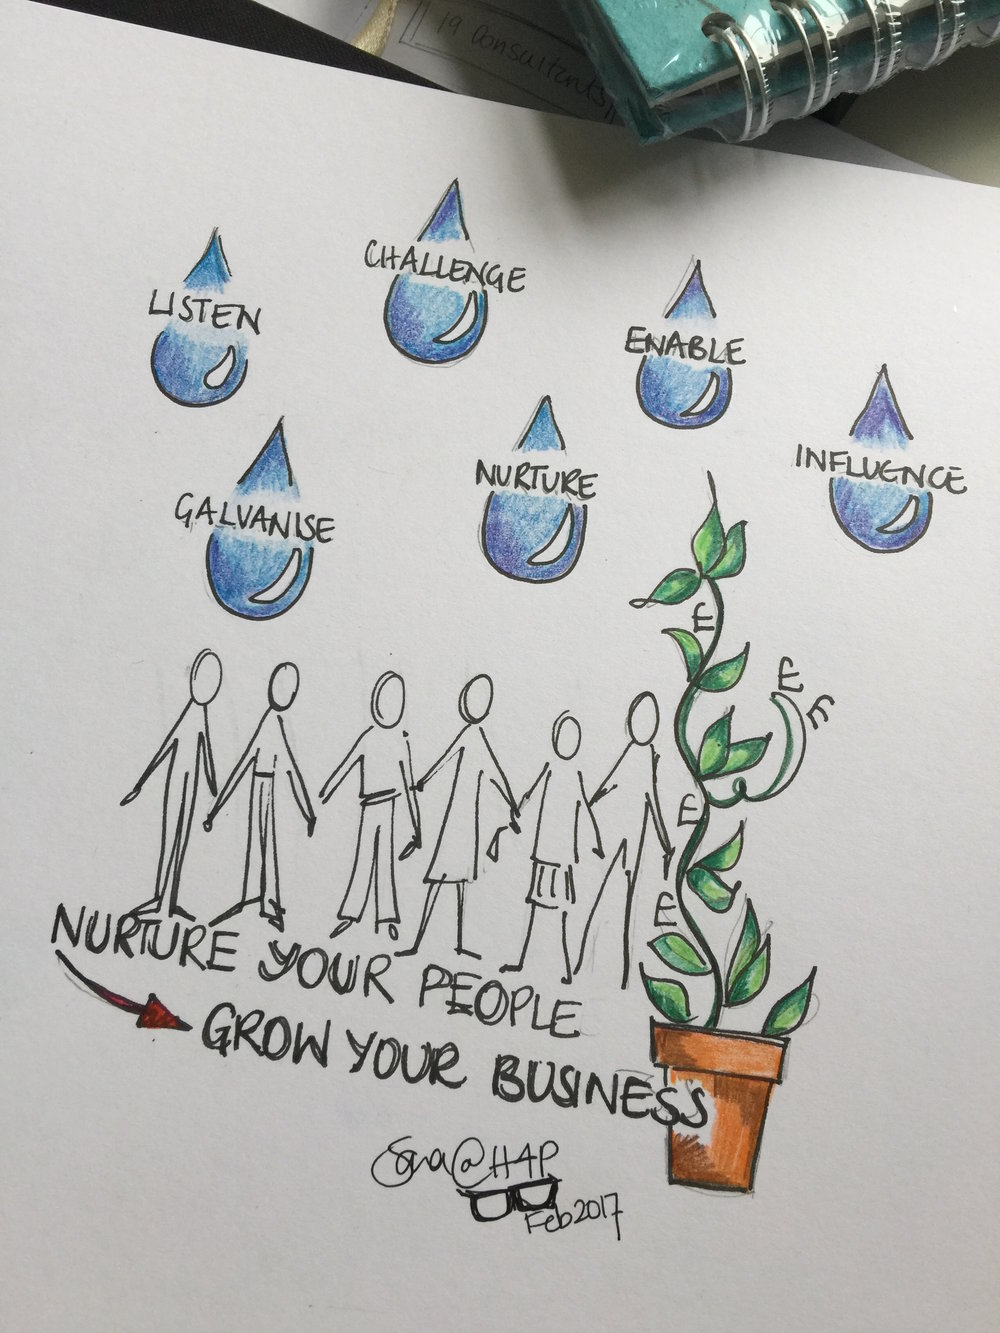 Nurture and grow your team